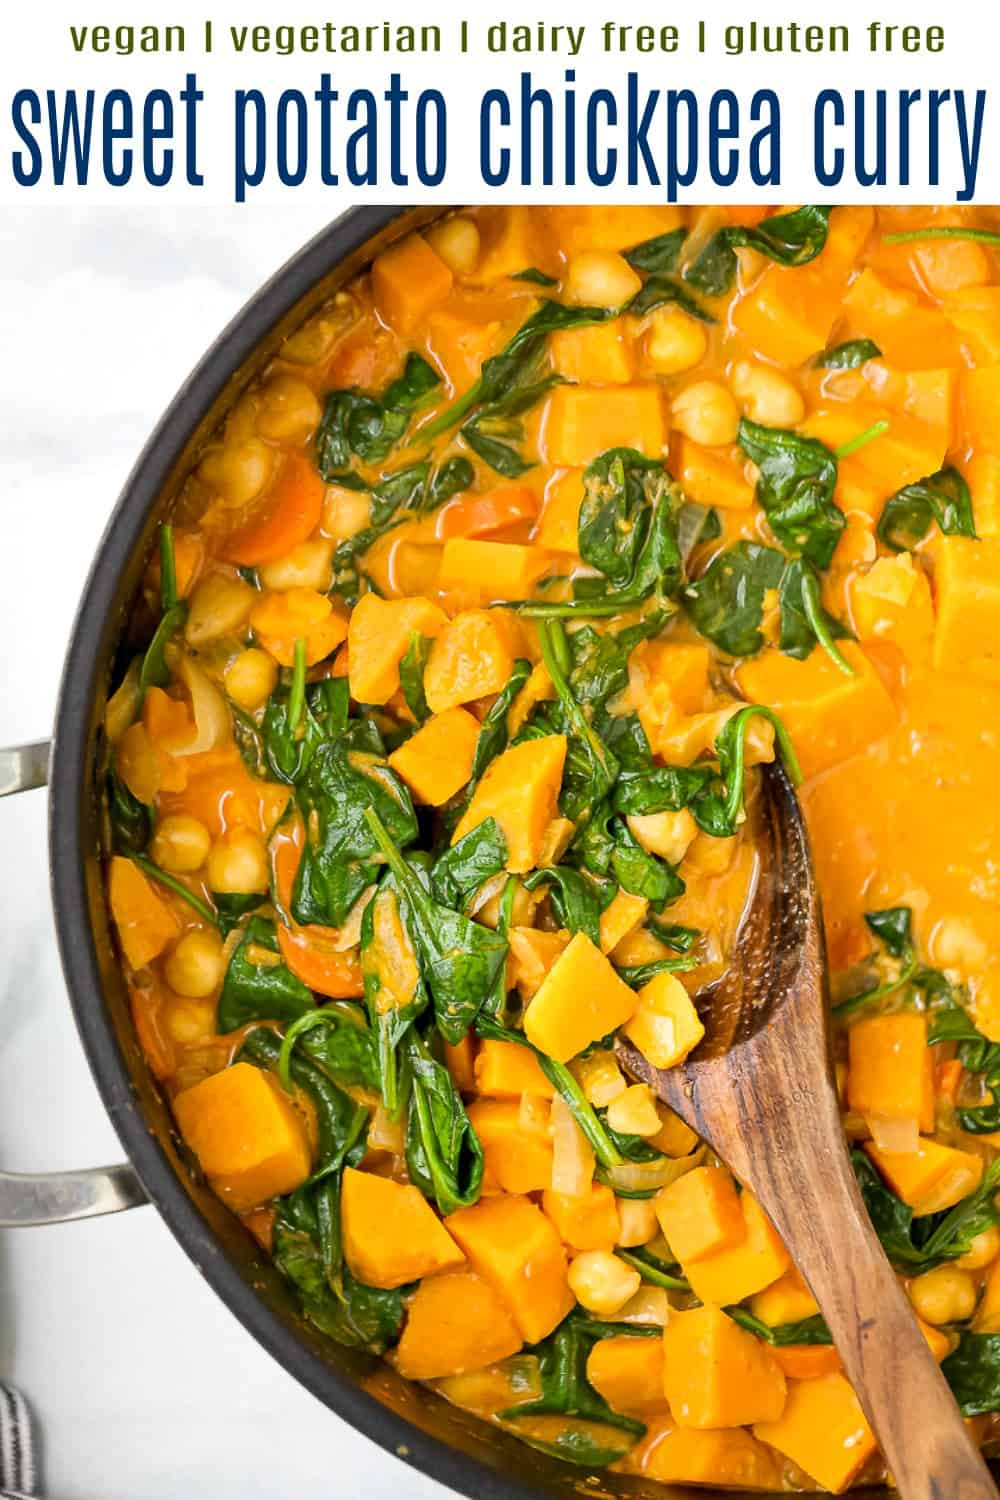 pinterest image for vegan sweet potato chickpea curry recipe